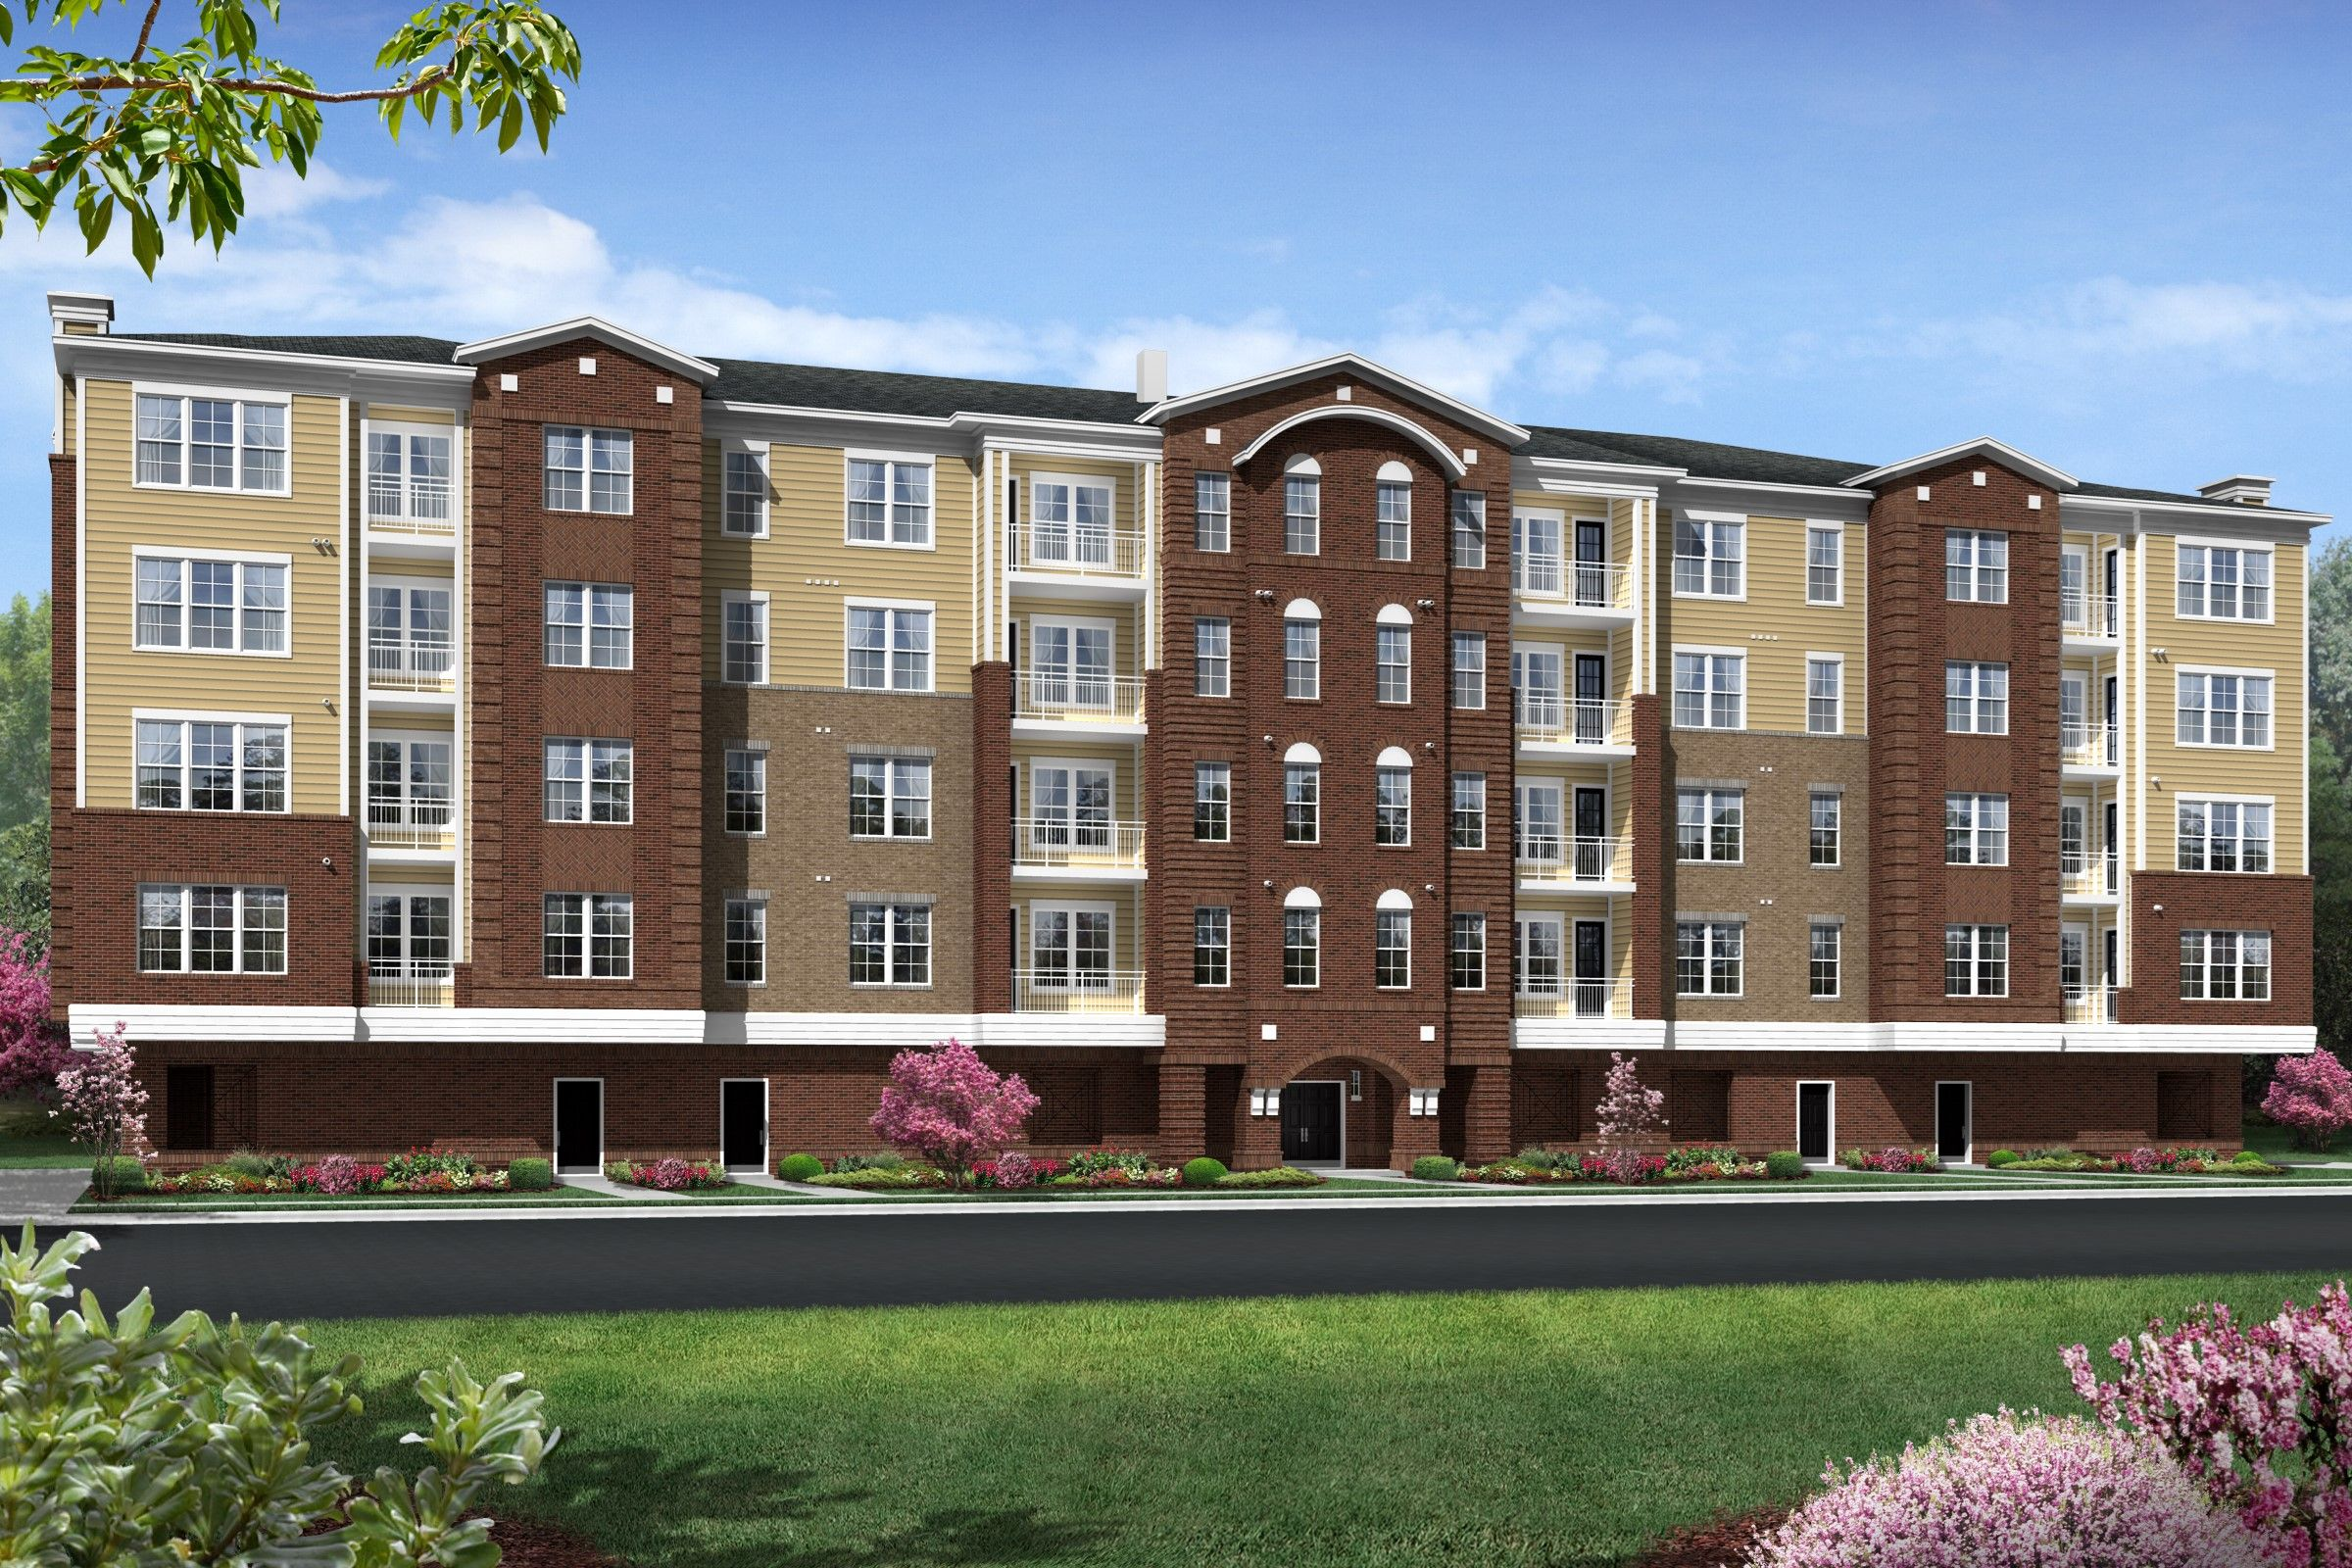 Multi Family for Sale at Discovery Square - Armstrong 3160 John Glenn Street, Unit 209 Oak Hill, Virginia 20171 United States